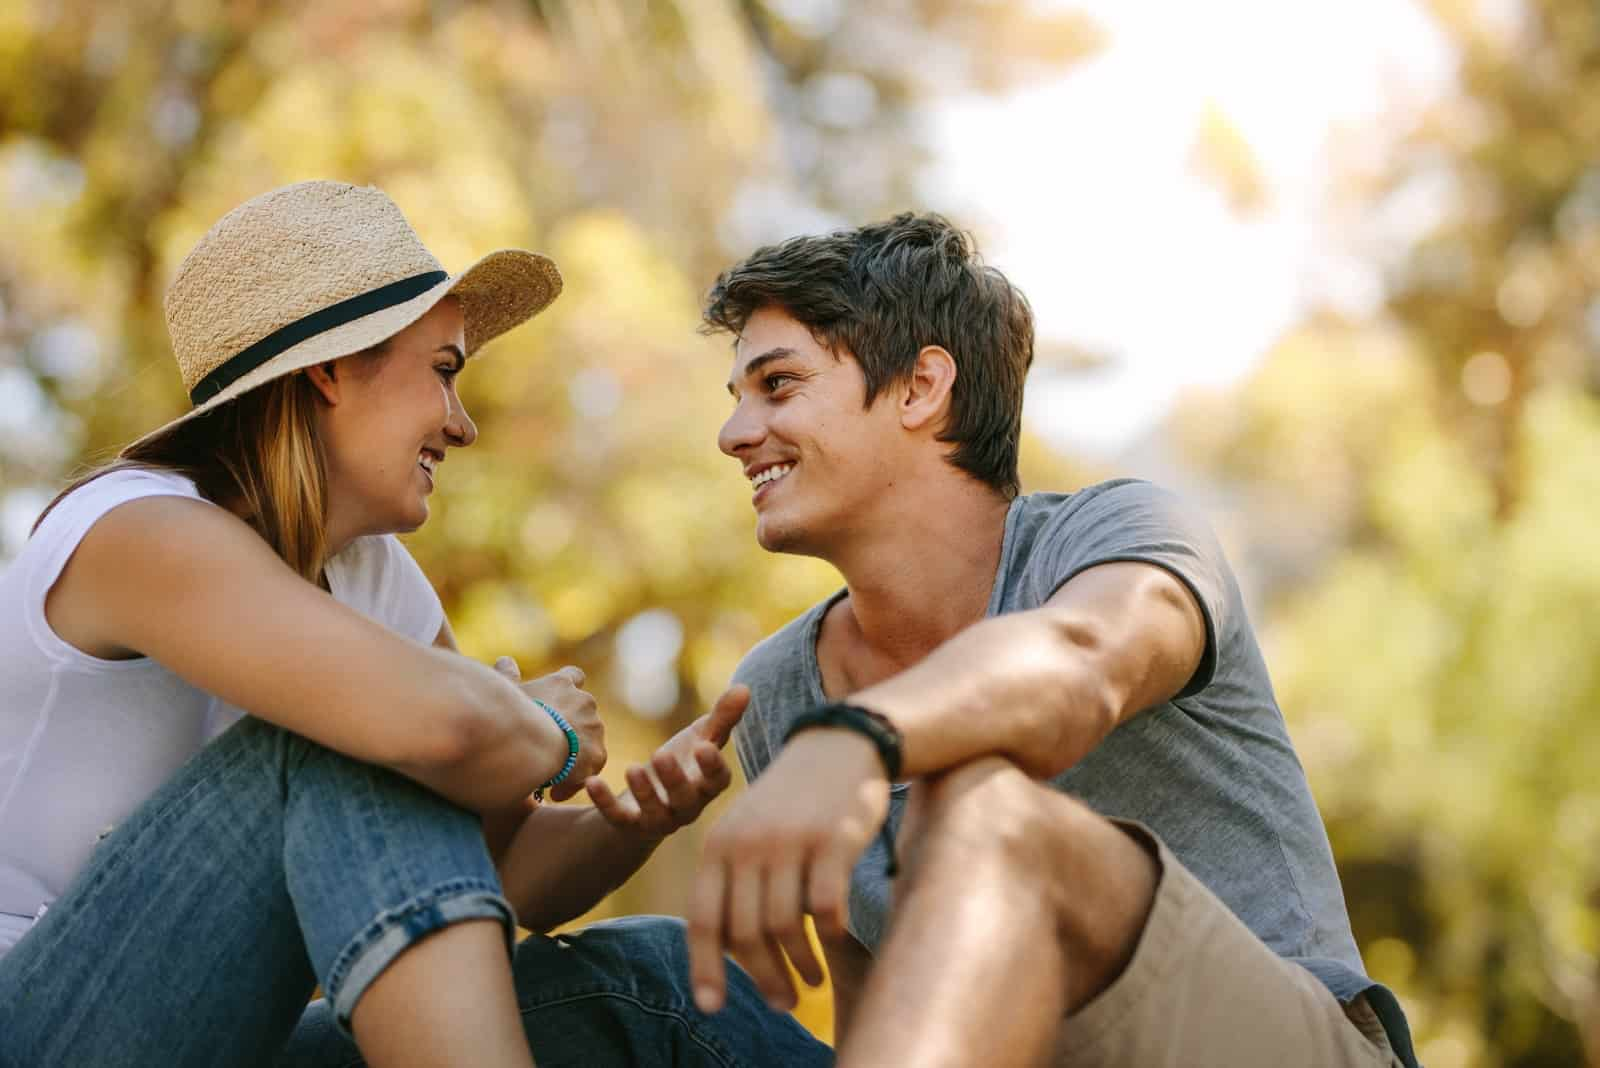 man and woman with hat talking while sitting outdoor